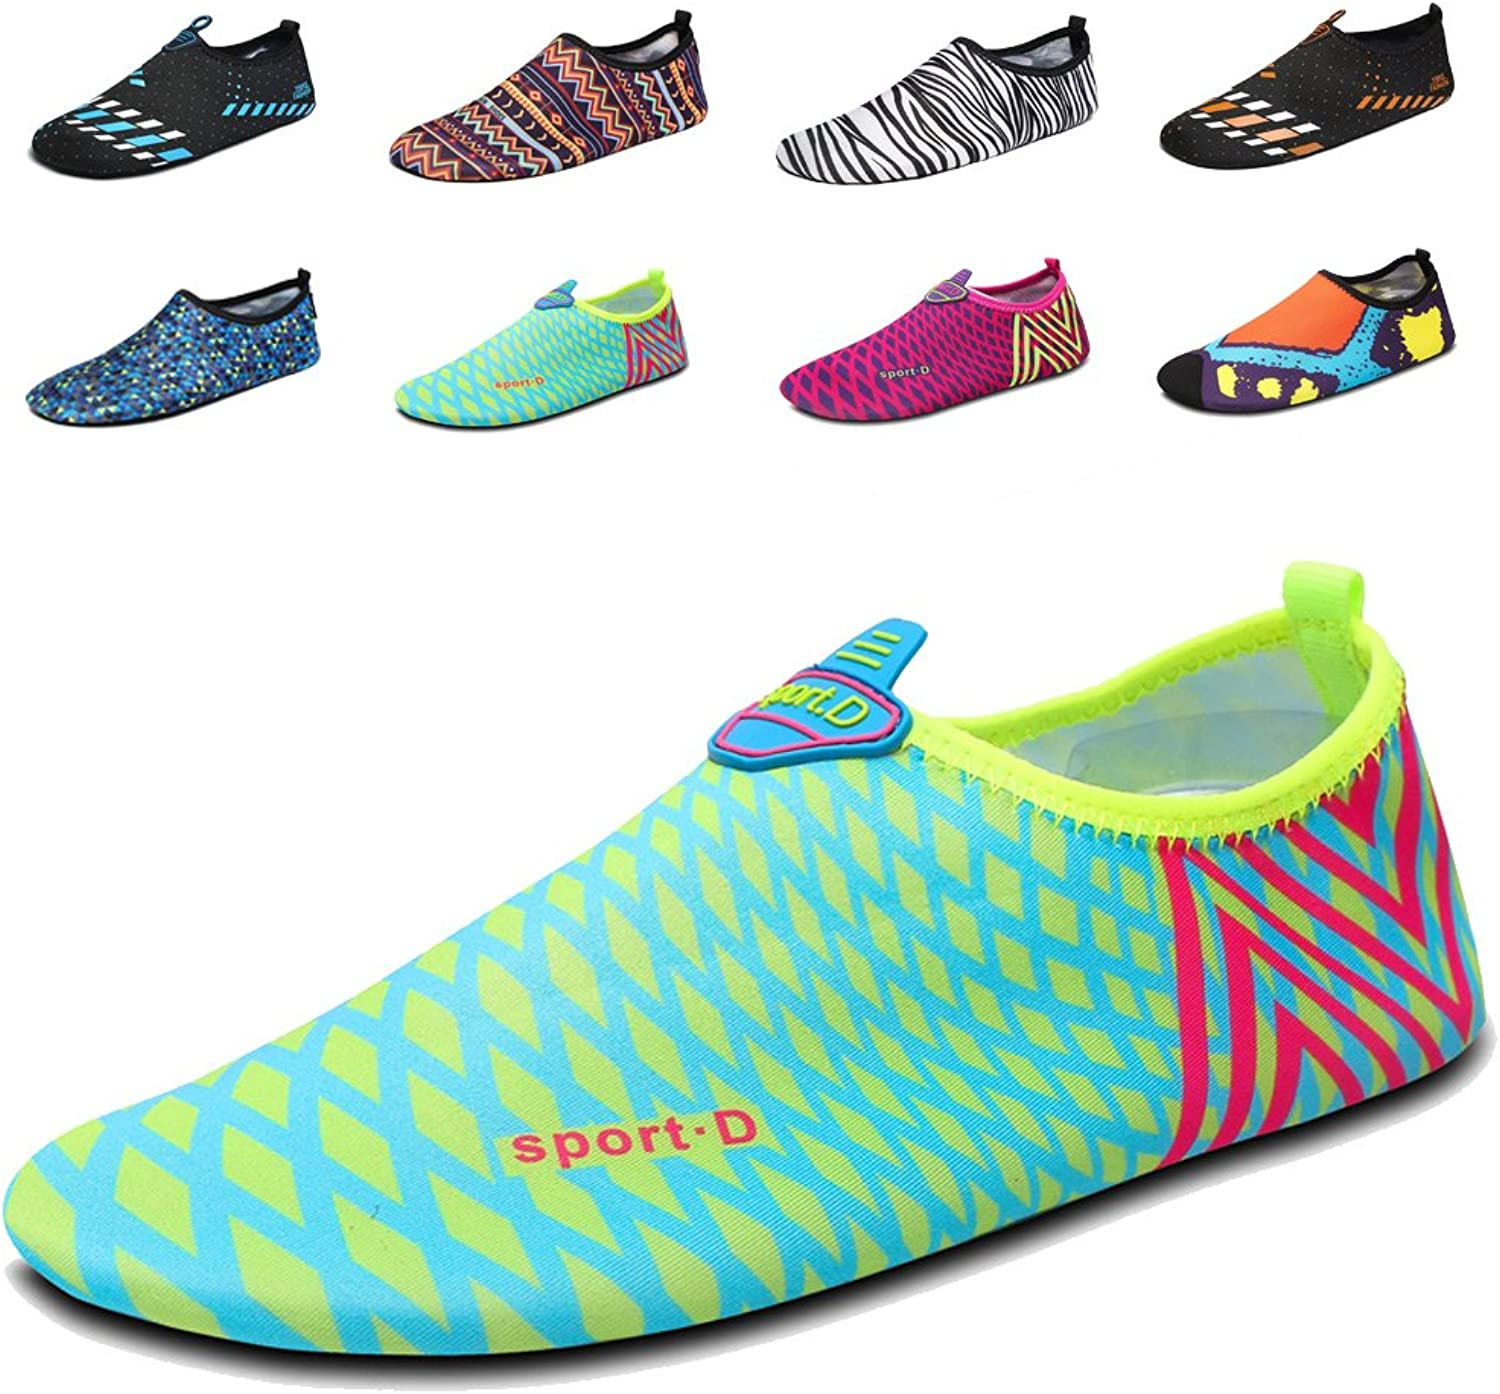 LAROK Men and Women's Quick-Dry Sport Barefoot Water shoes Aqua Socks for Beach Surf Yoga Exercise